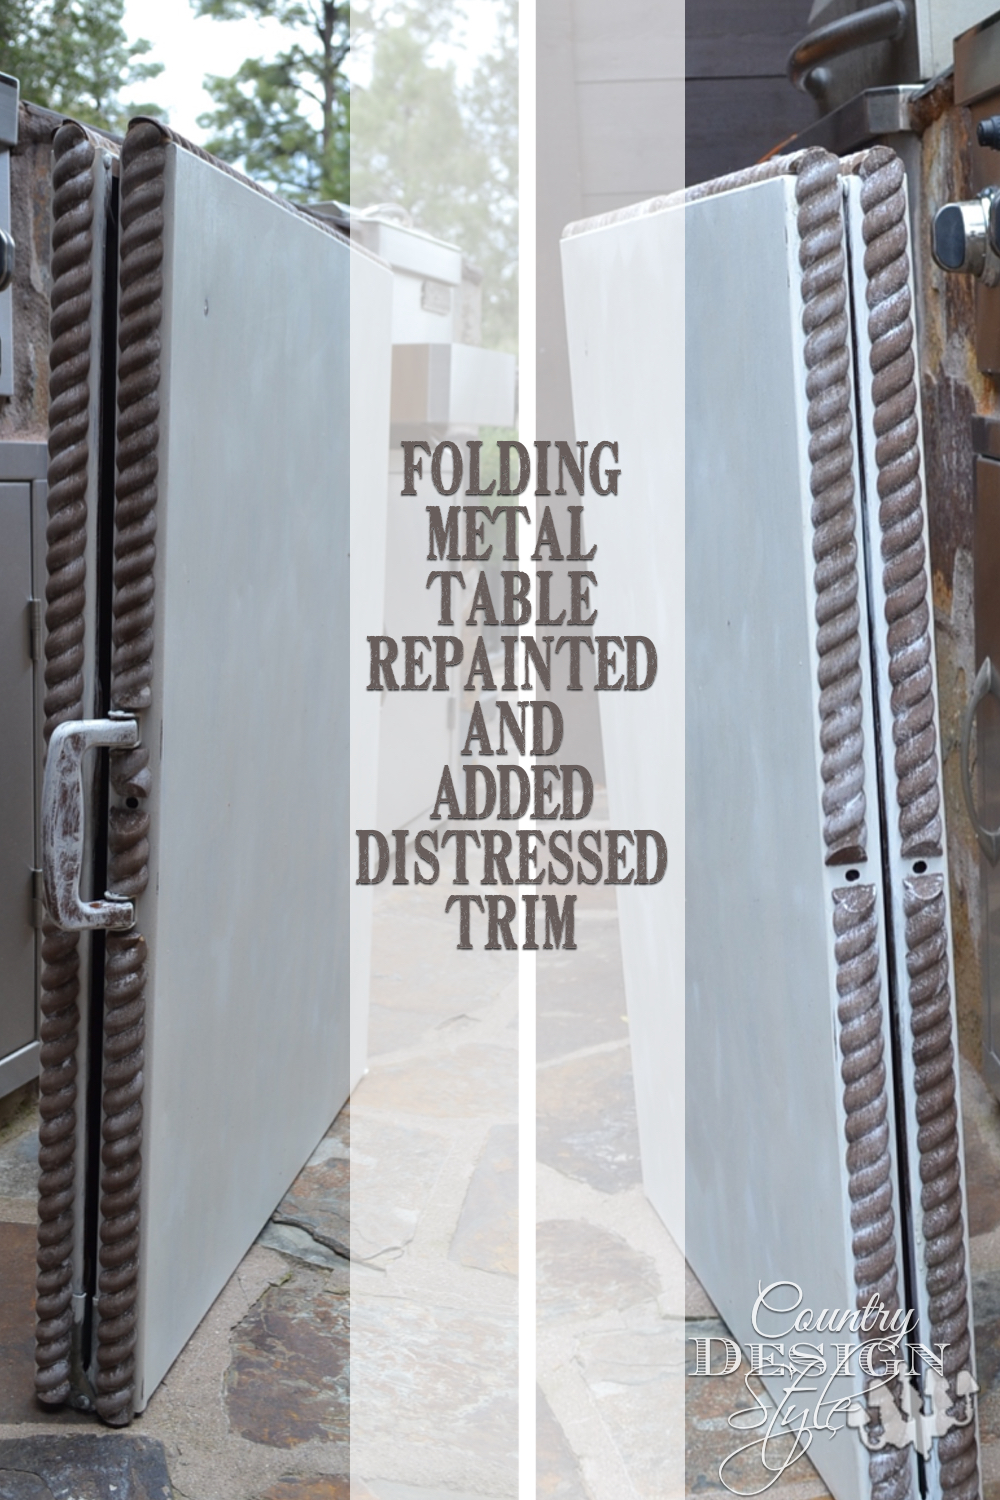 Folding metal table repainted and distressed trim added! Country Design Style